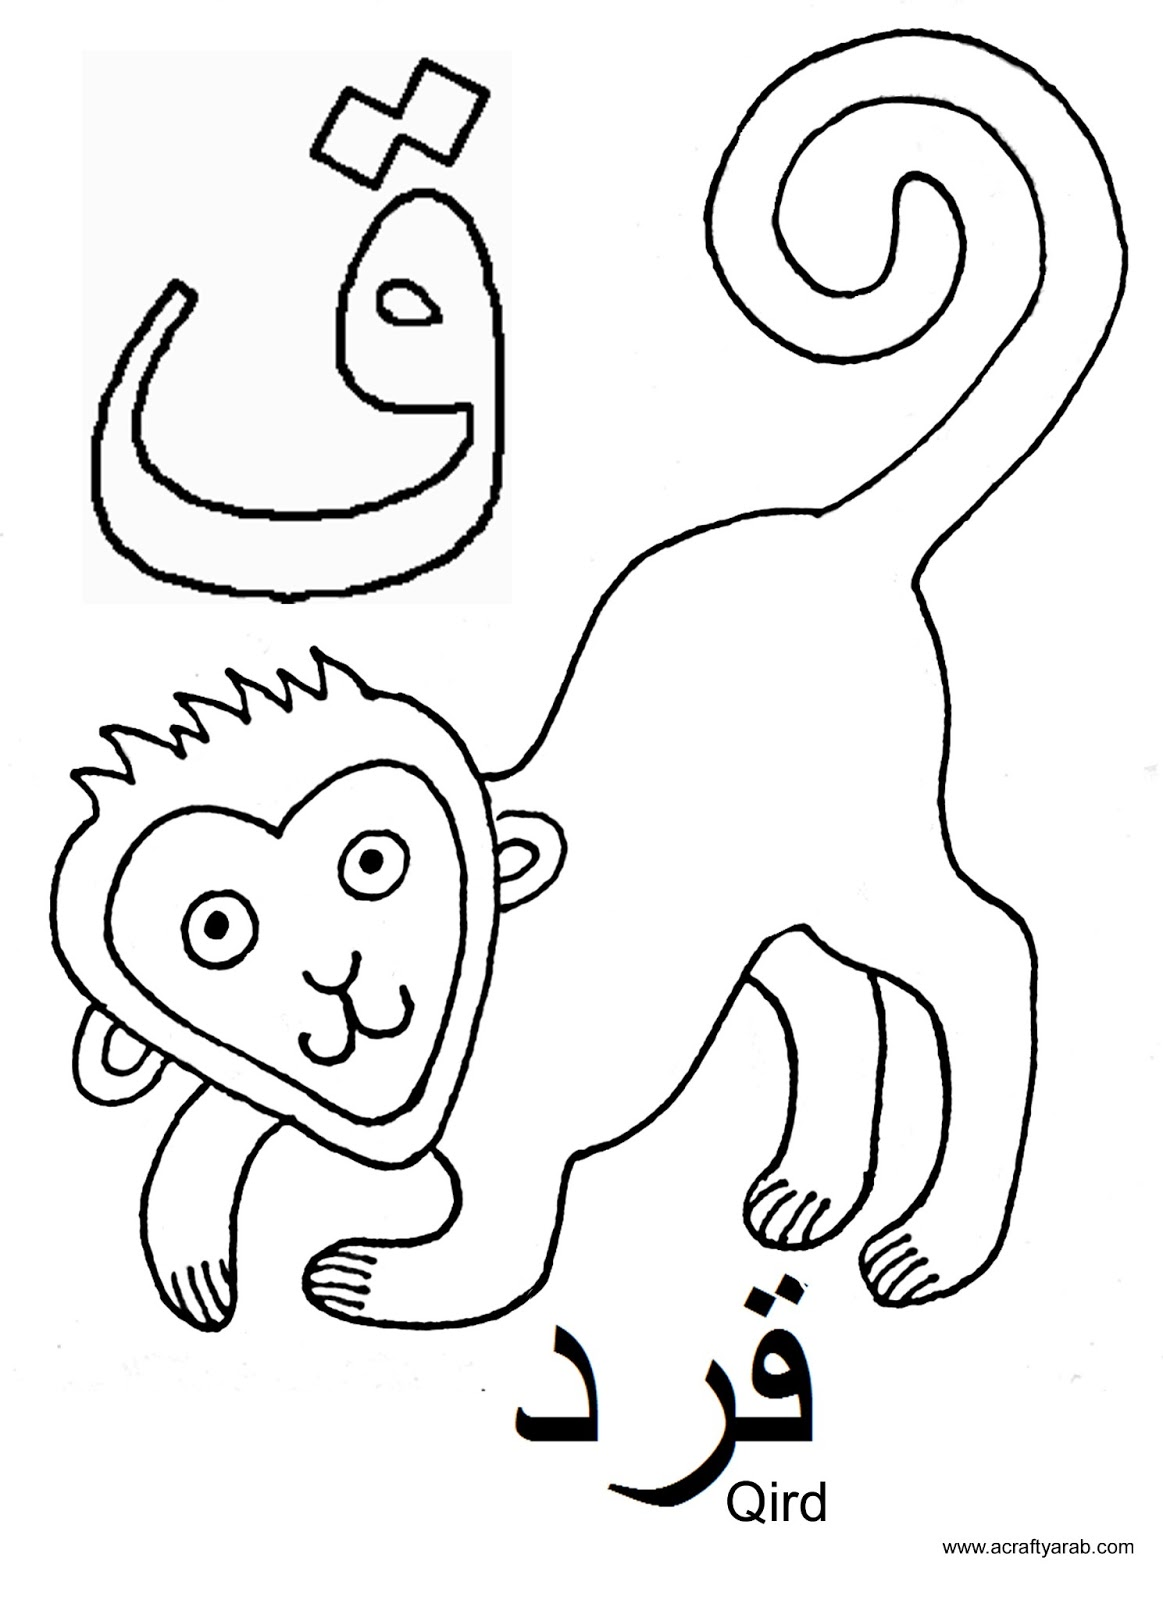 A Crafty Arab: Arabic Alphabet coloring pages...Qaf is for